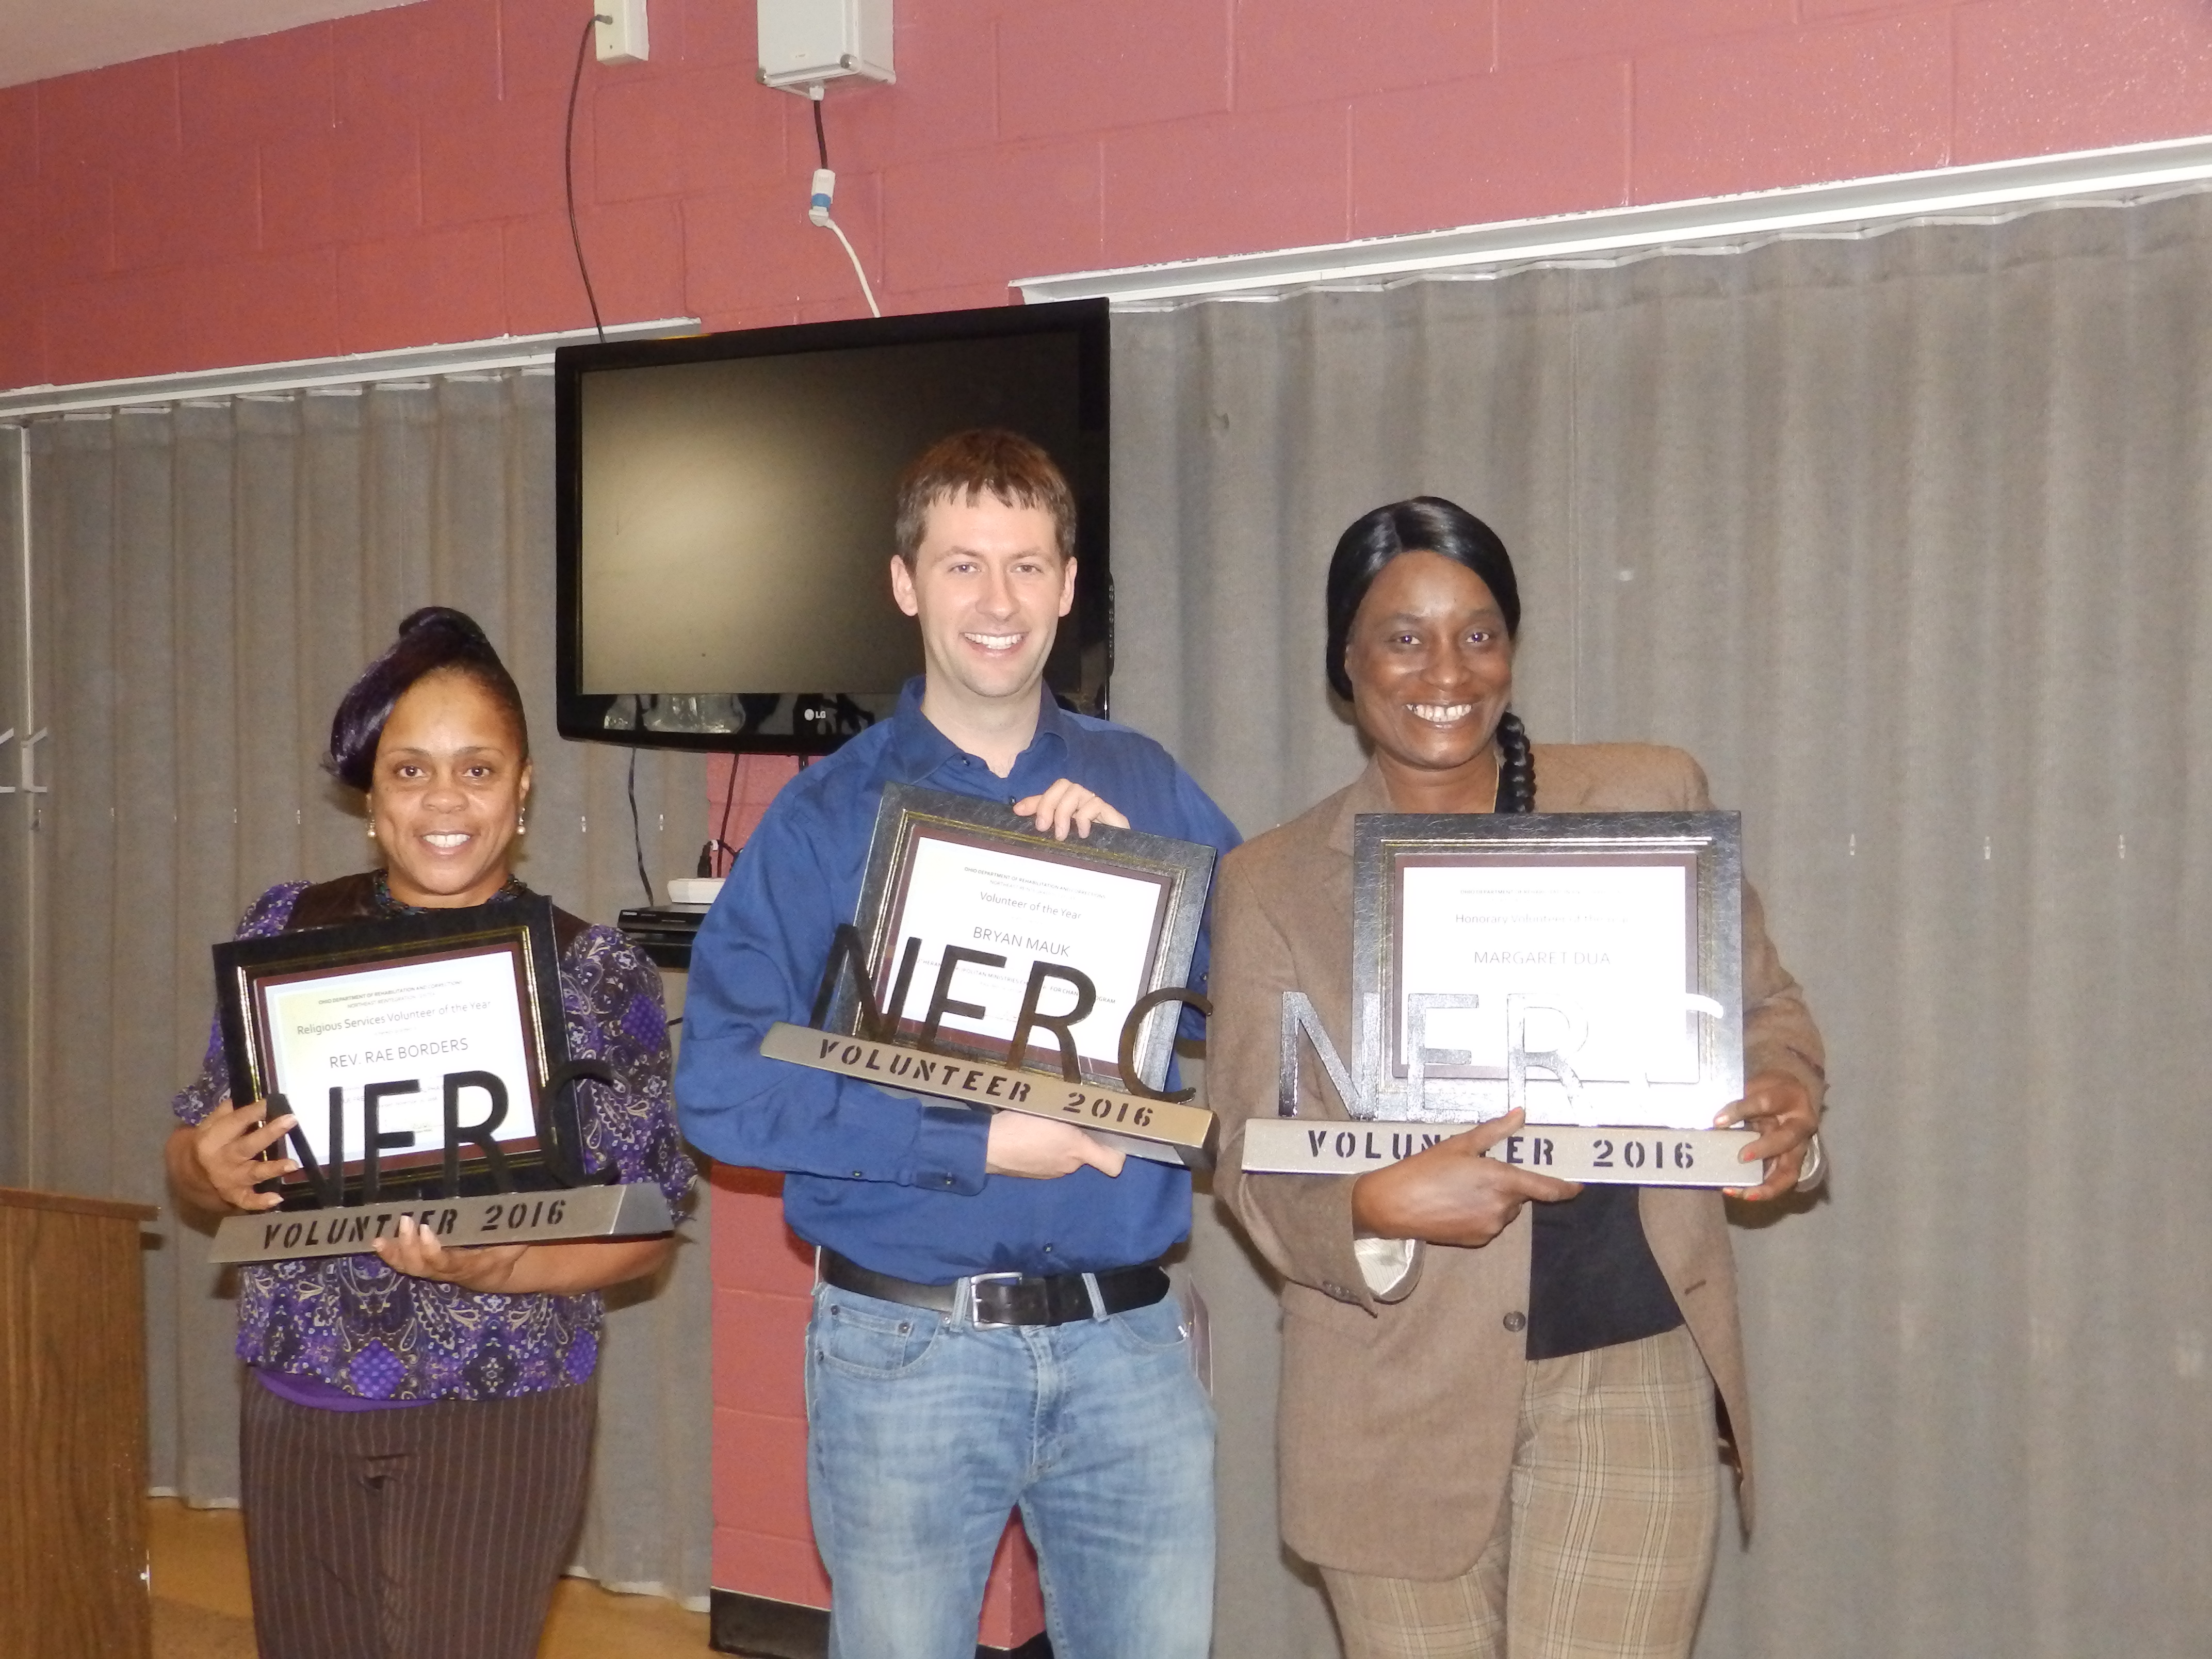 NERC Volunteers of the Year 2016